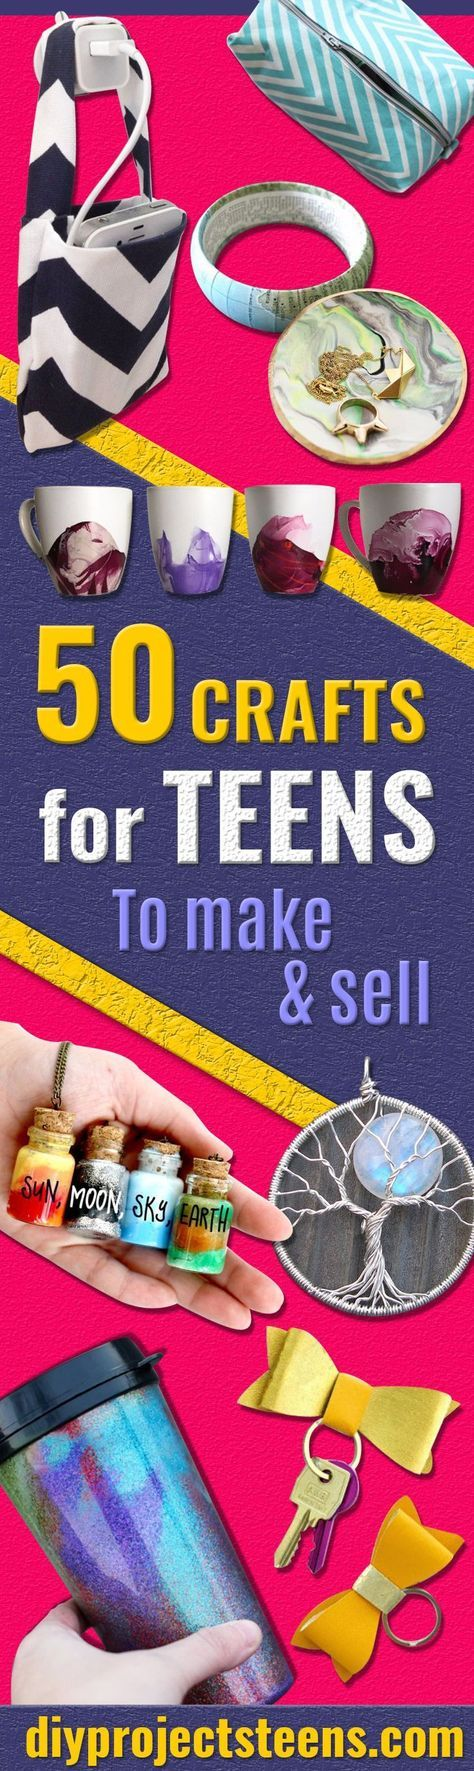 best ideas about cool gifts for teens diy for 50 crafts for teens to make and sell